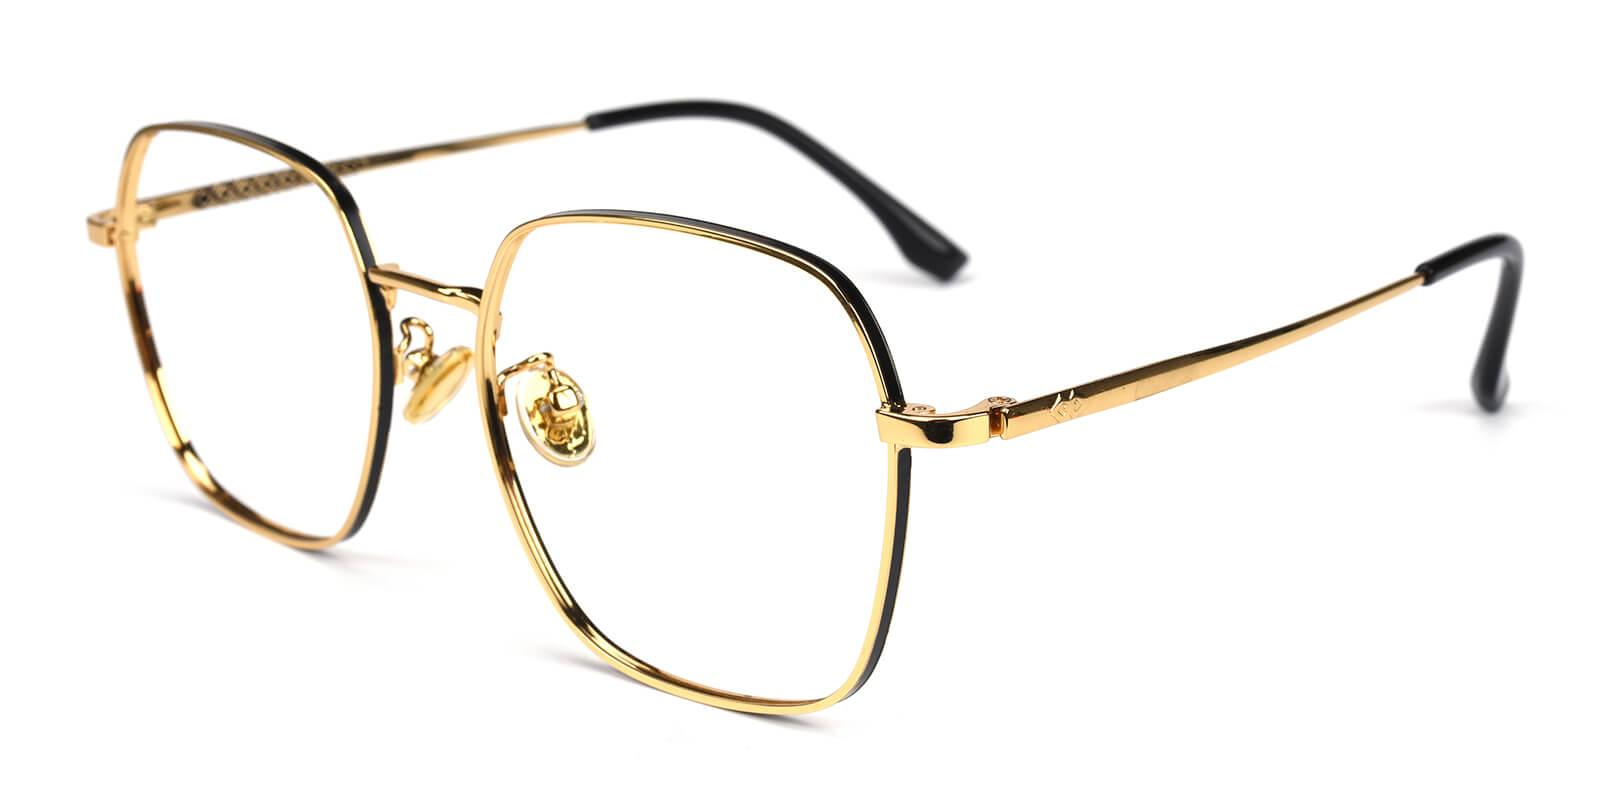 Vincoy-Gold-Square-Metal-Eyeglasses-additional1